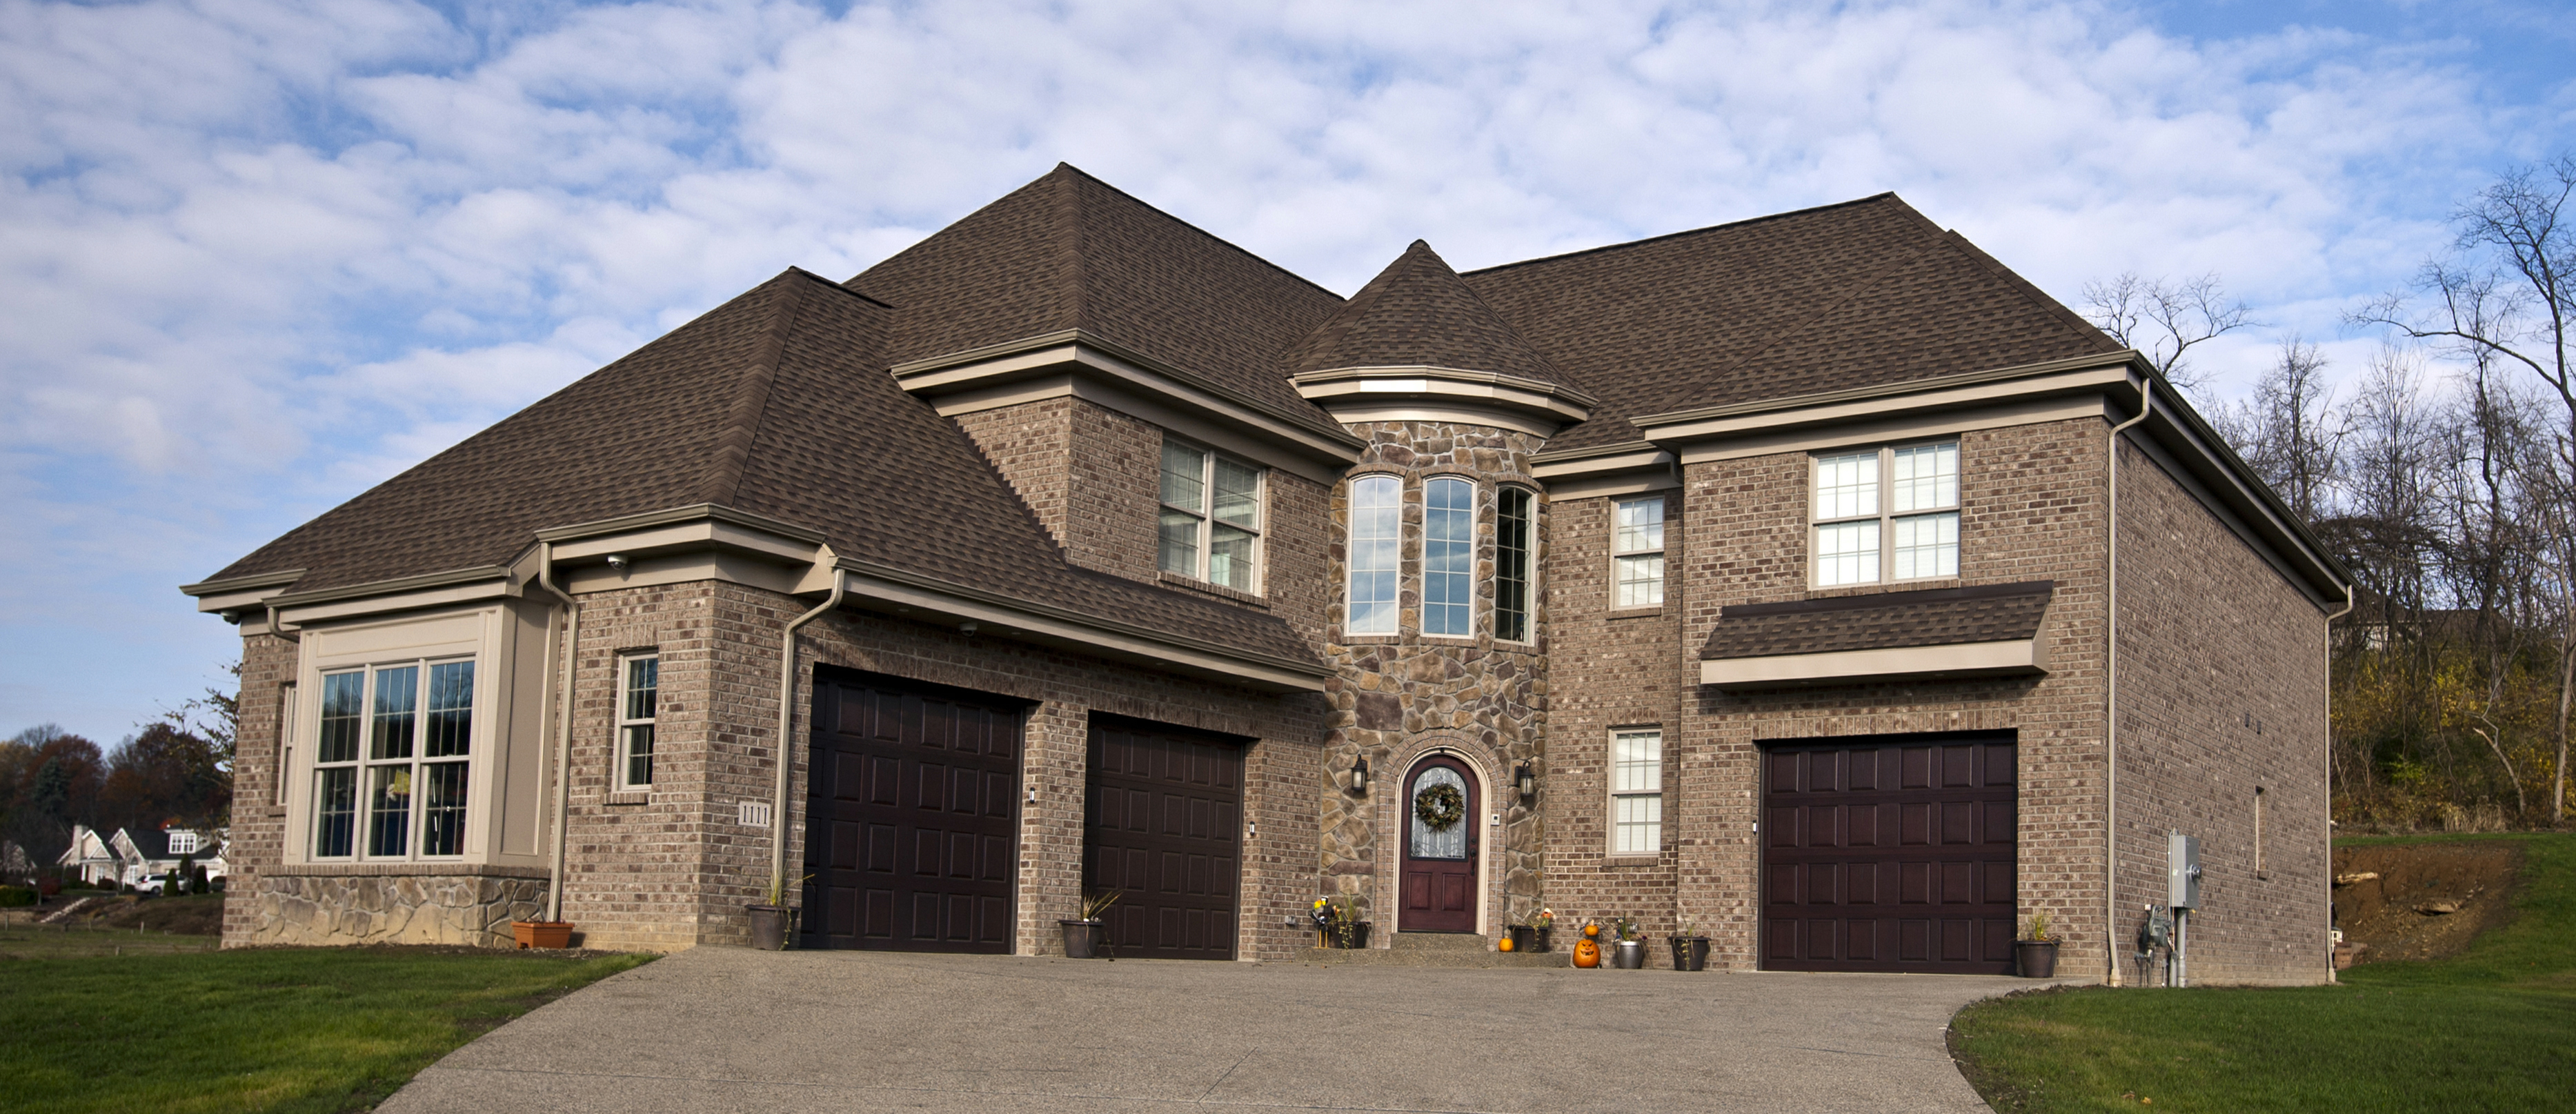 Consistently recognized as one of Pittsburgh's premier custom home builders, it is Paragon's goal to turn your dream into a reality through planning, attention to detail and outstanding customer service.